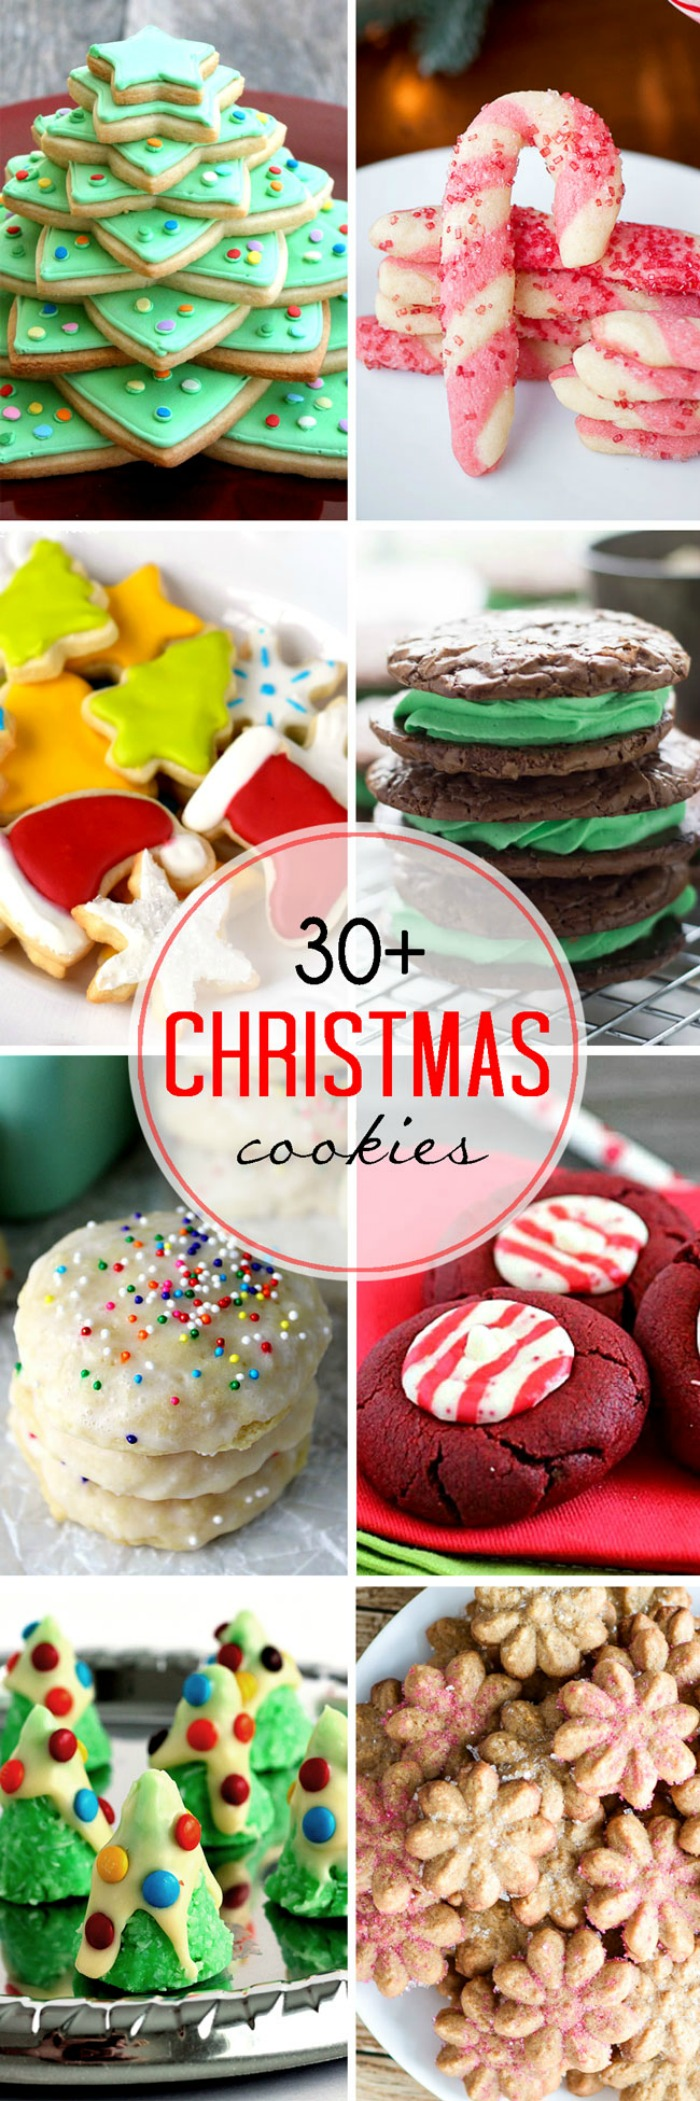 With over 30 Festive Christmas Cookies, you will find a holiday baking recipe everyone will love! | The Love Nerds